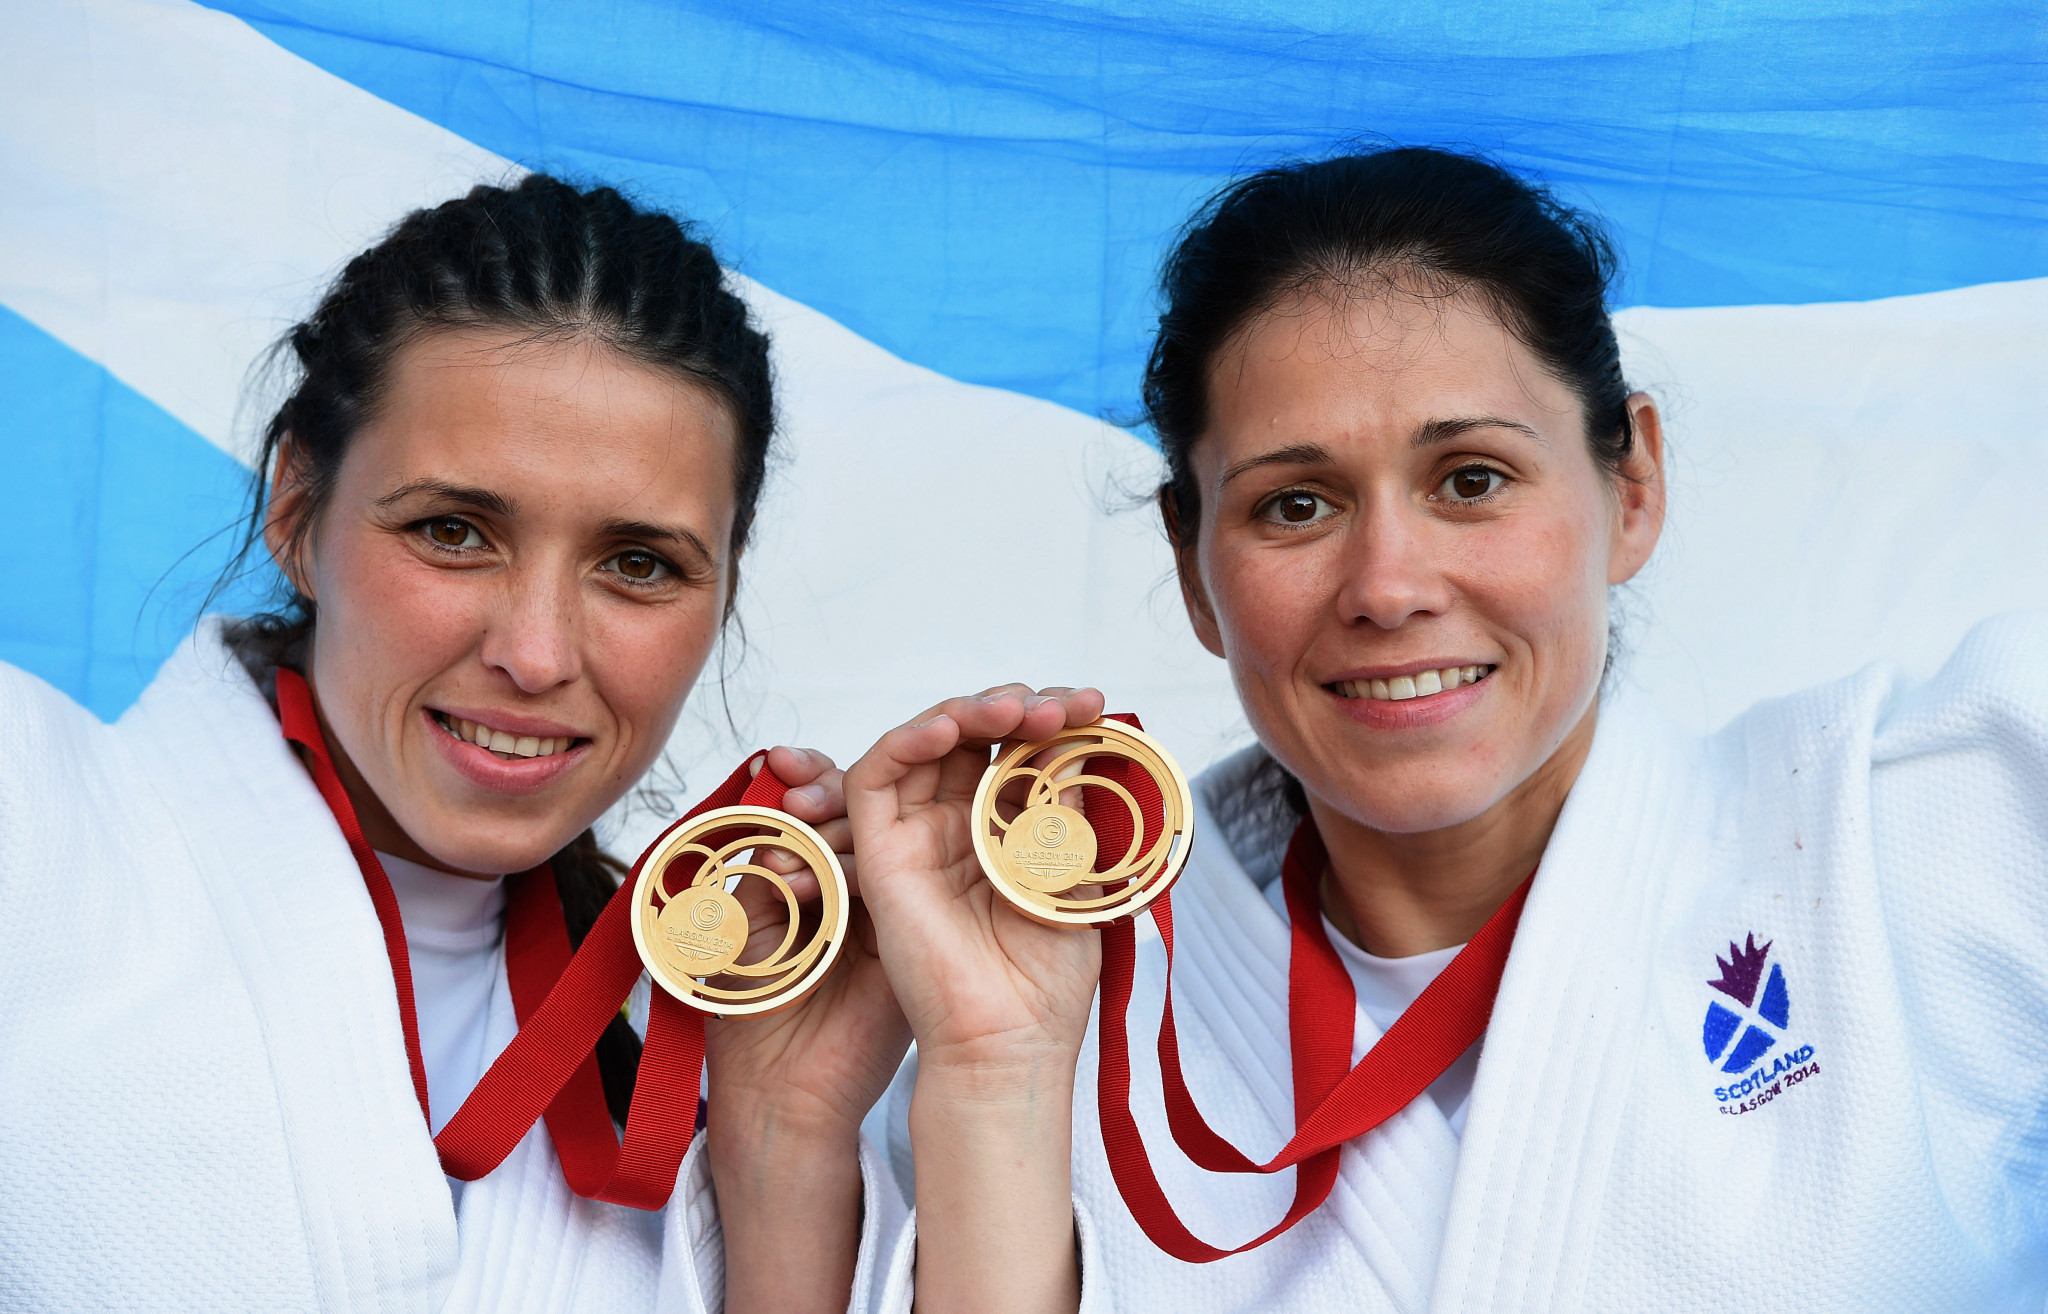 (L-R) Gold medal winning sisters Kimberley Renicks of Scotland (Women's -48kg judo) and Louise Renicks of Scotland (Women's -52kg judo) pose at SECC Precinct during day one of the Glasgow 2014 Commonwealth Games ©Getty Images